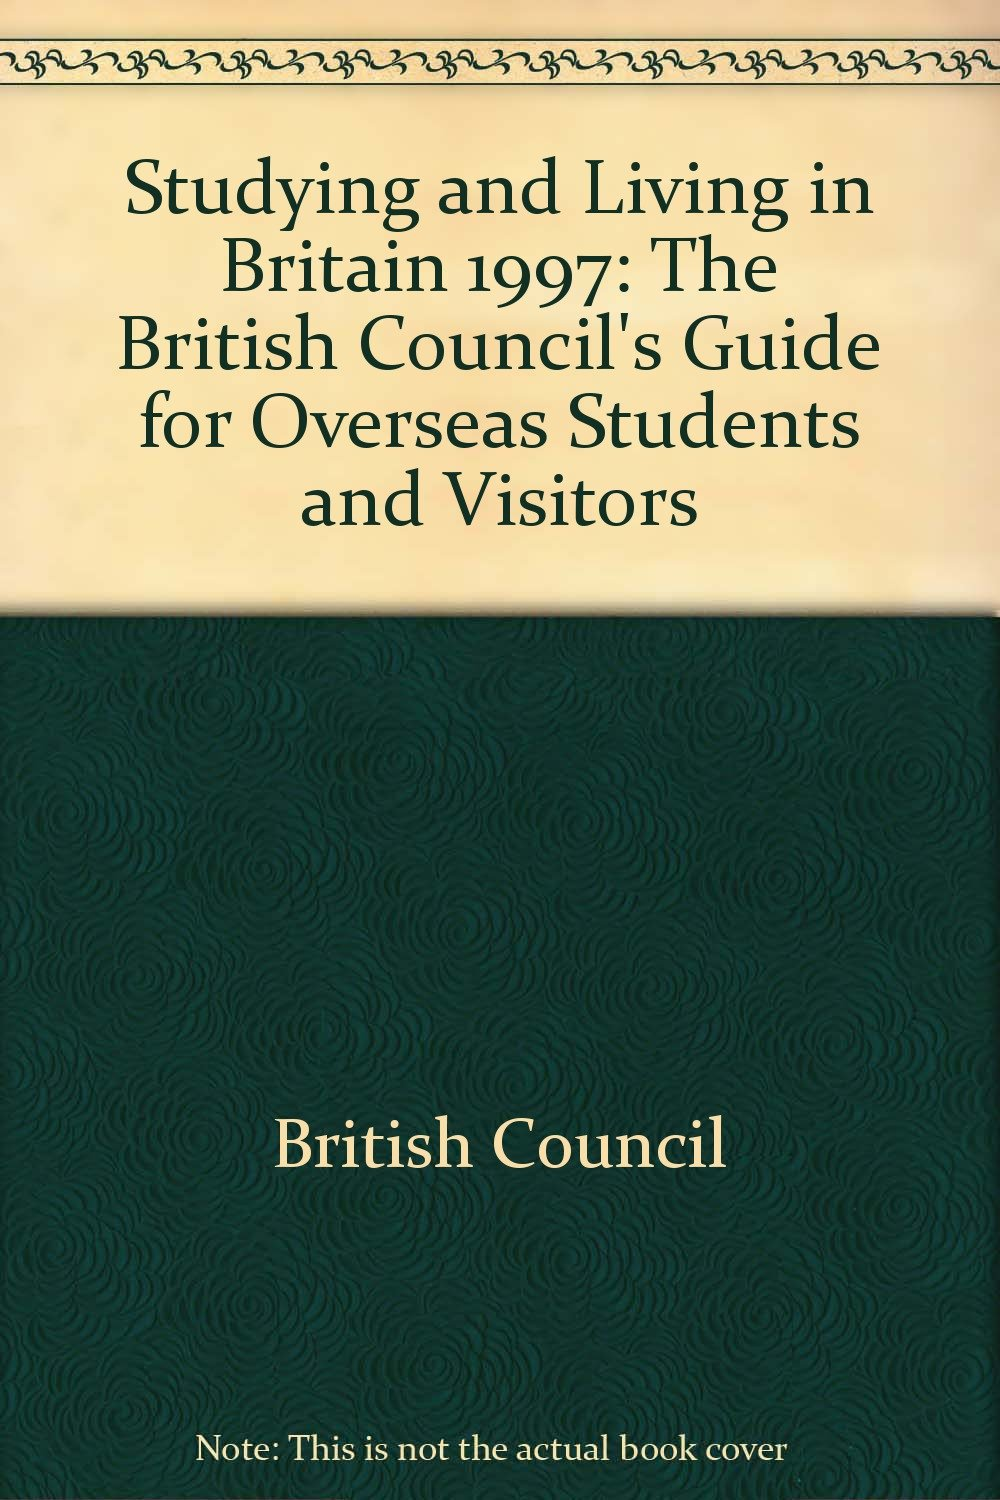 Studying and Living in Britain 1997: The British Council's Guide for Overseas Students and Visitors